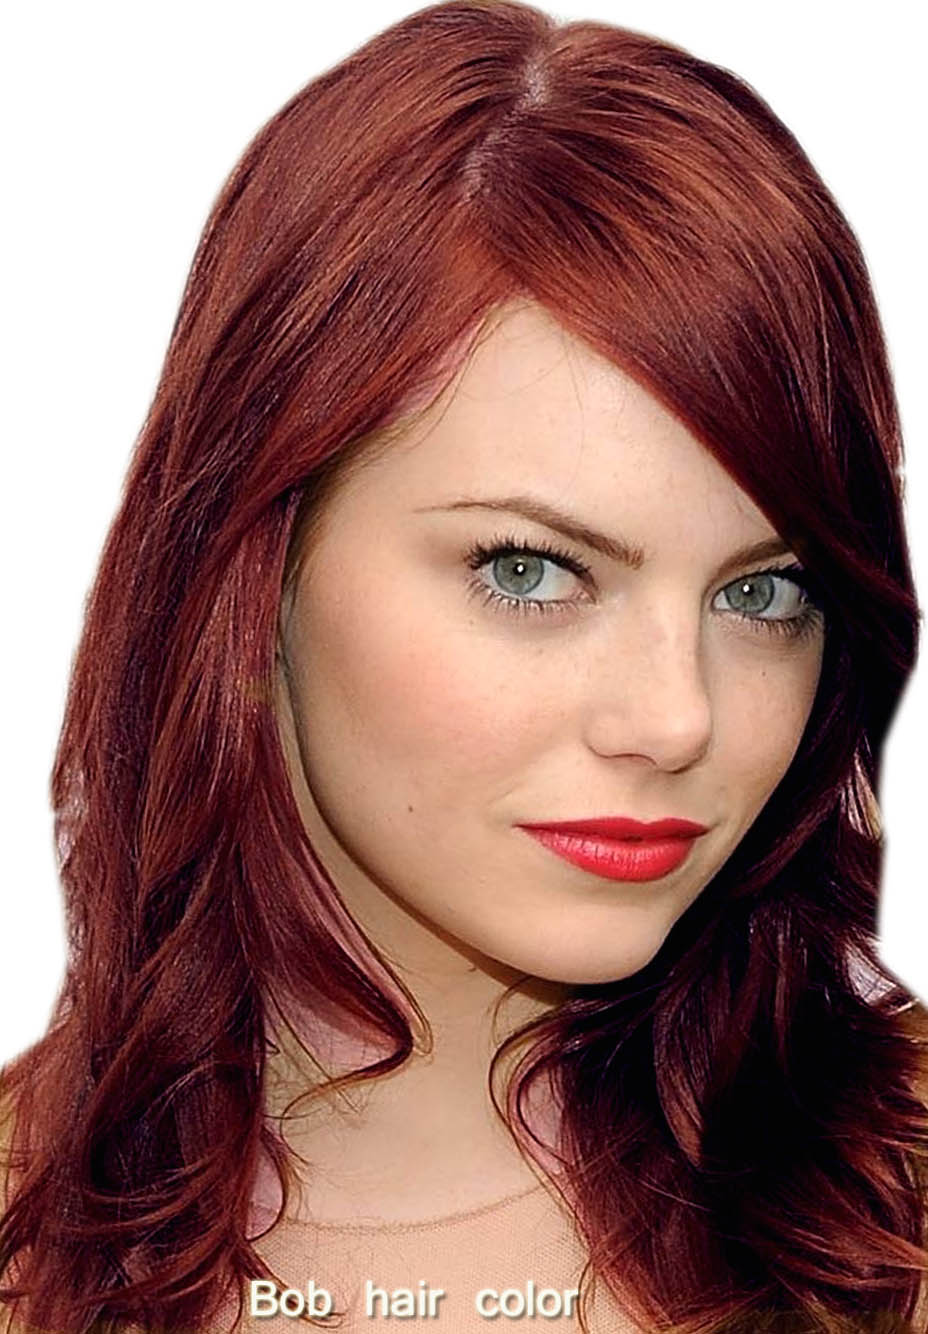 makeup for blue green eyes and red hair - wavy haircut